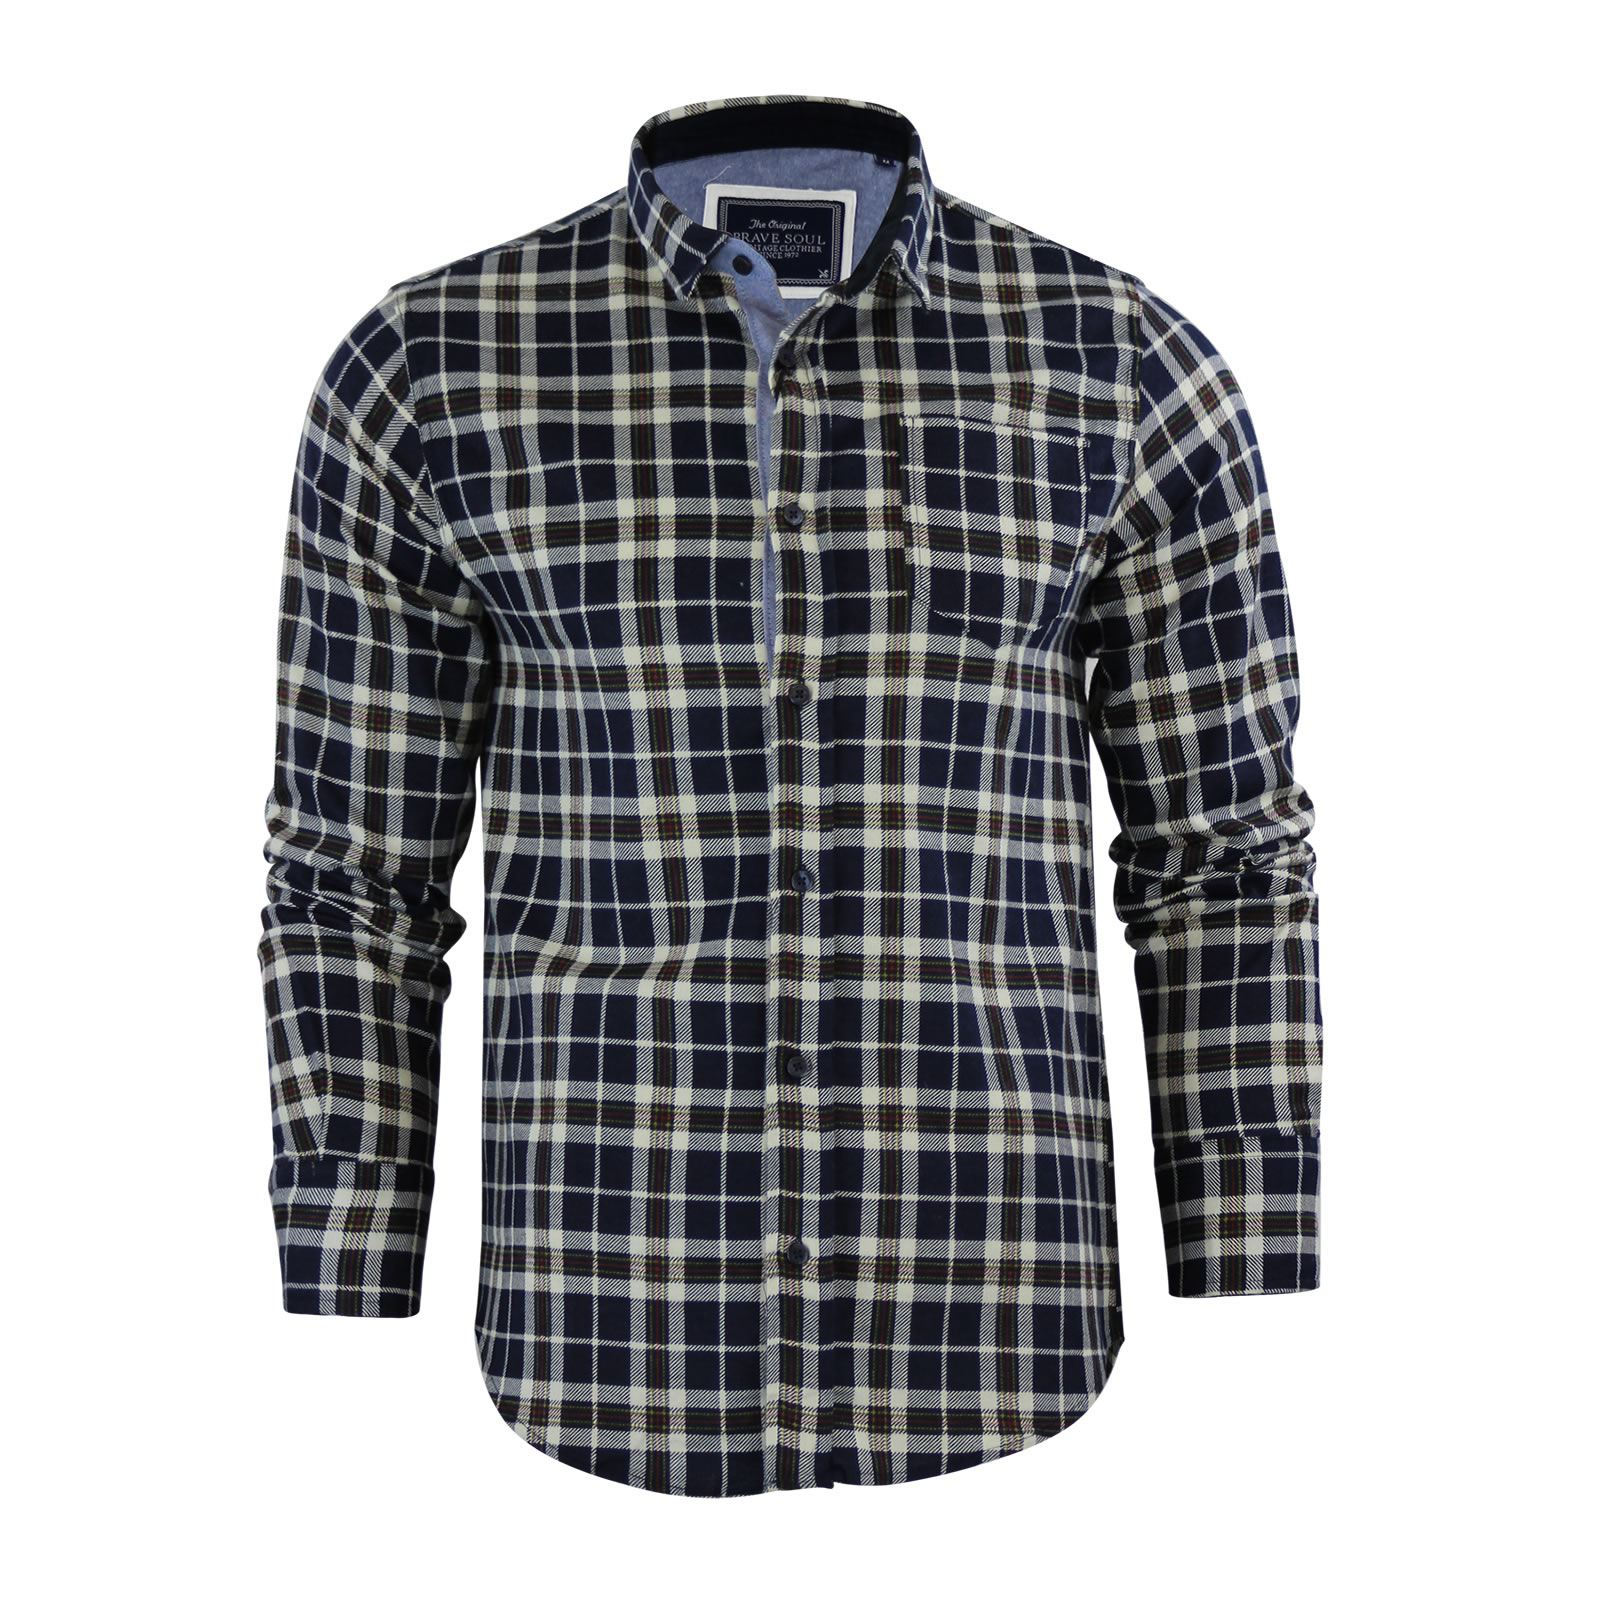 Brave-Soul-Mens-Check-Shirt-Flannel-Brushed-Cotton-Long-Sleeve-Casual-Top thumbnail 71